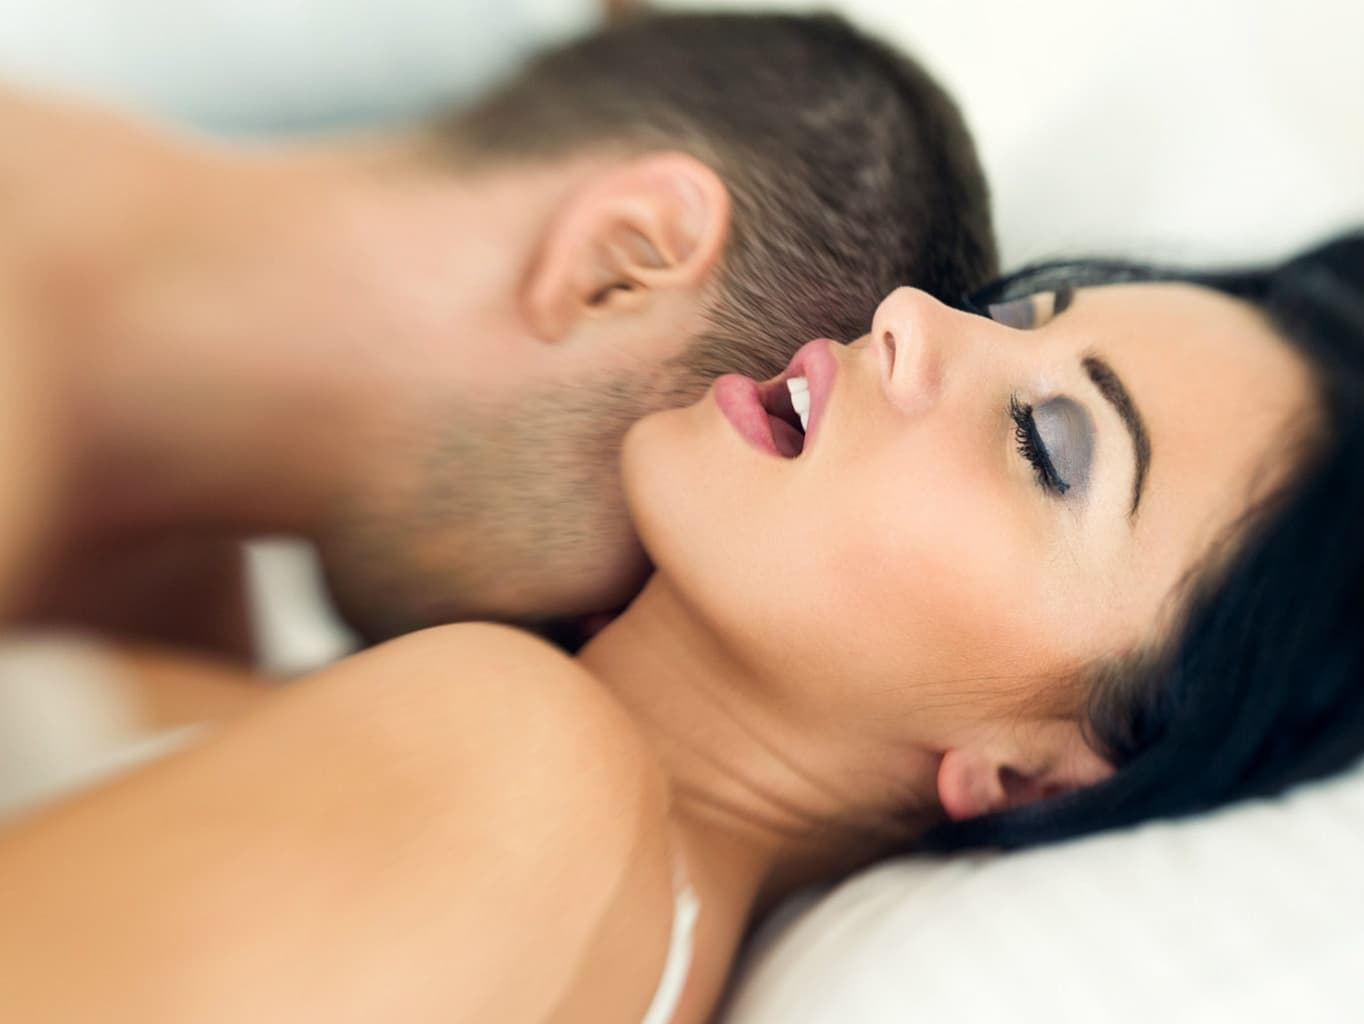 Hot ecstasy - the program of erotic massage